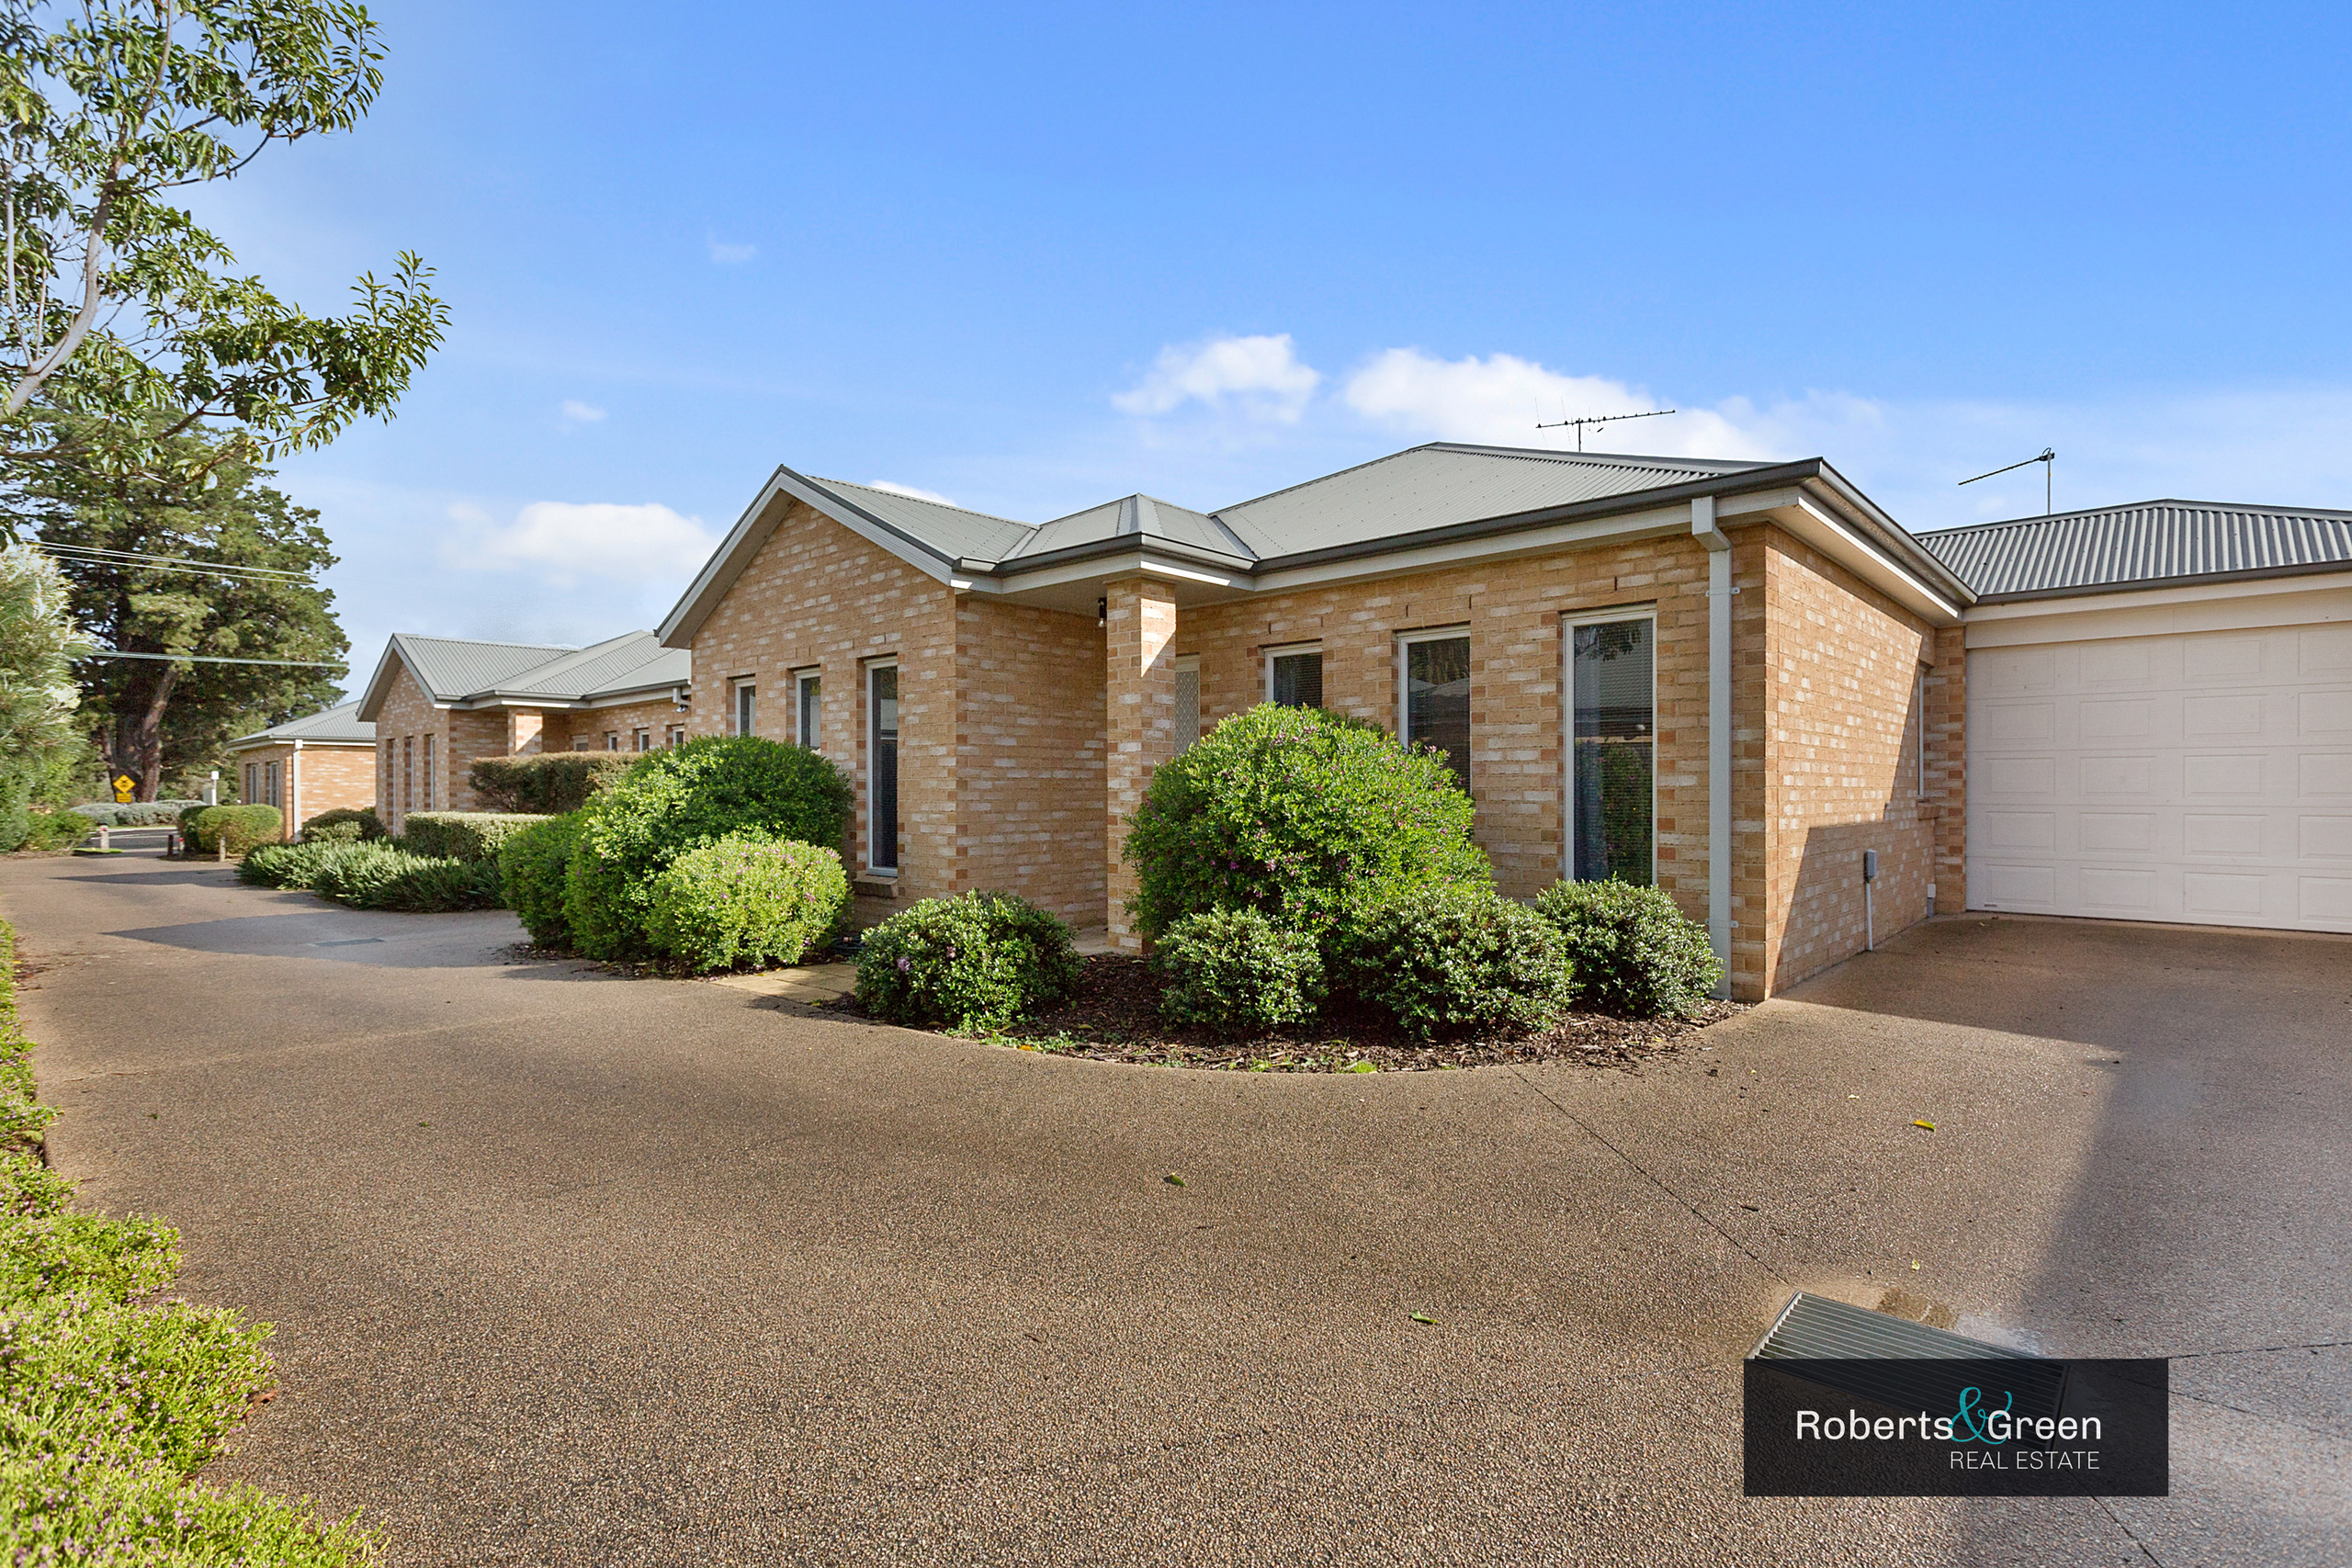 Homes for sale crib point vic - 3 240 Stony Point Road Crib Point Vic 3919 Apartment For Rent 320